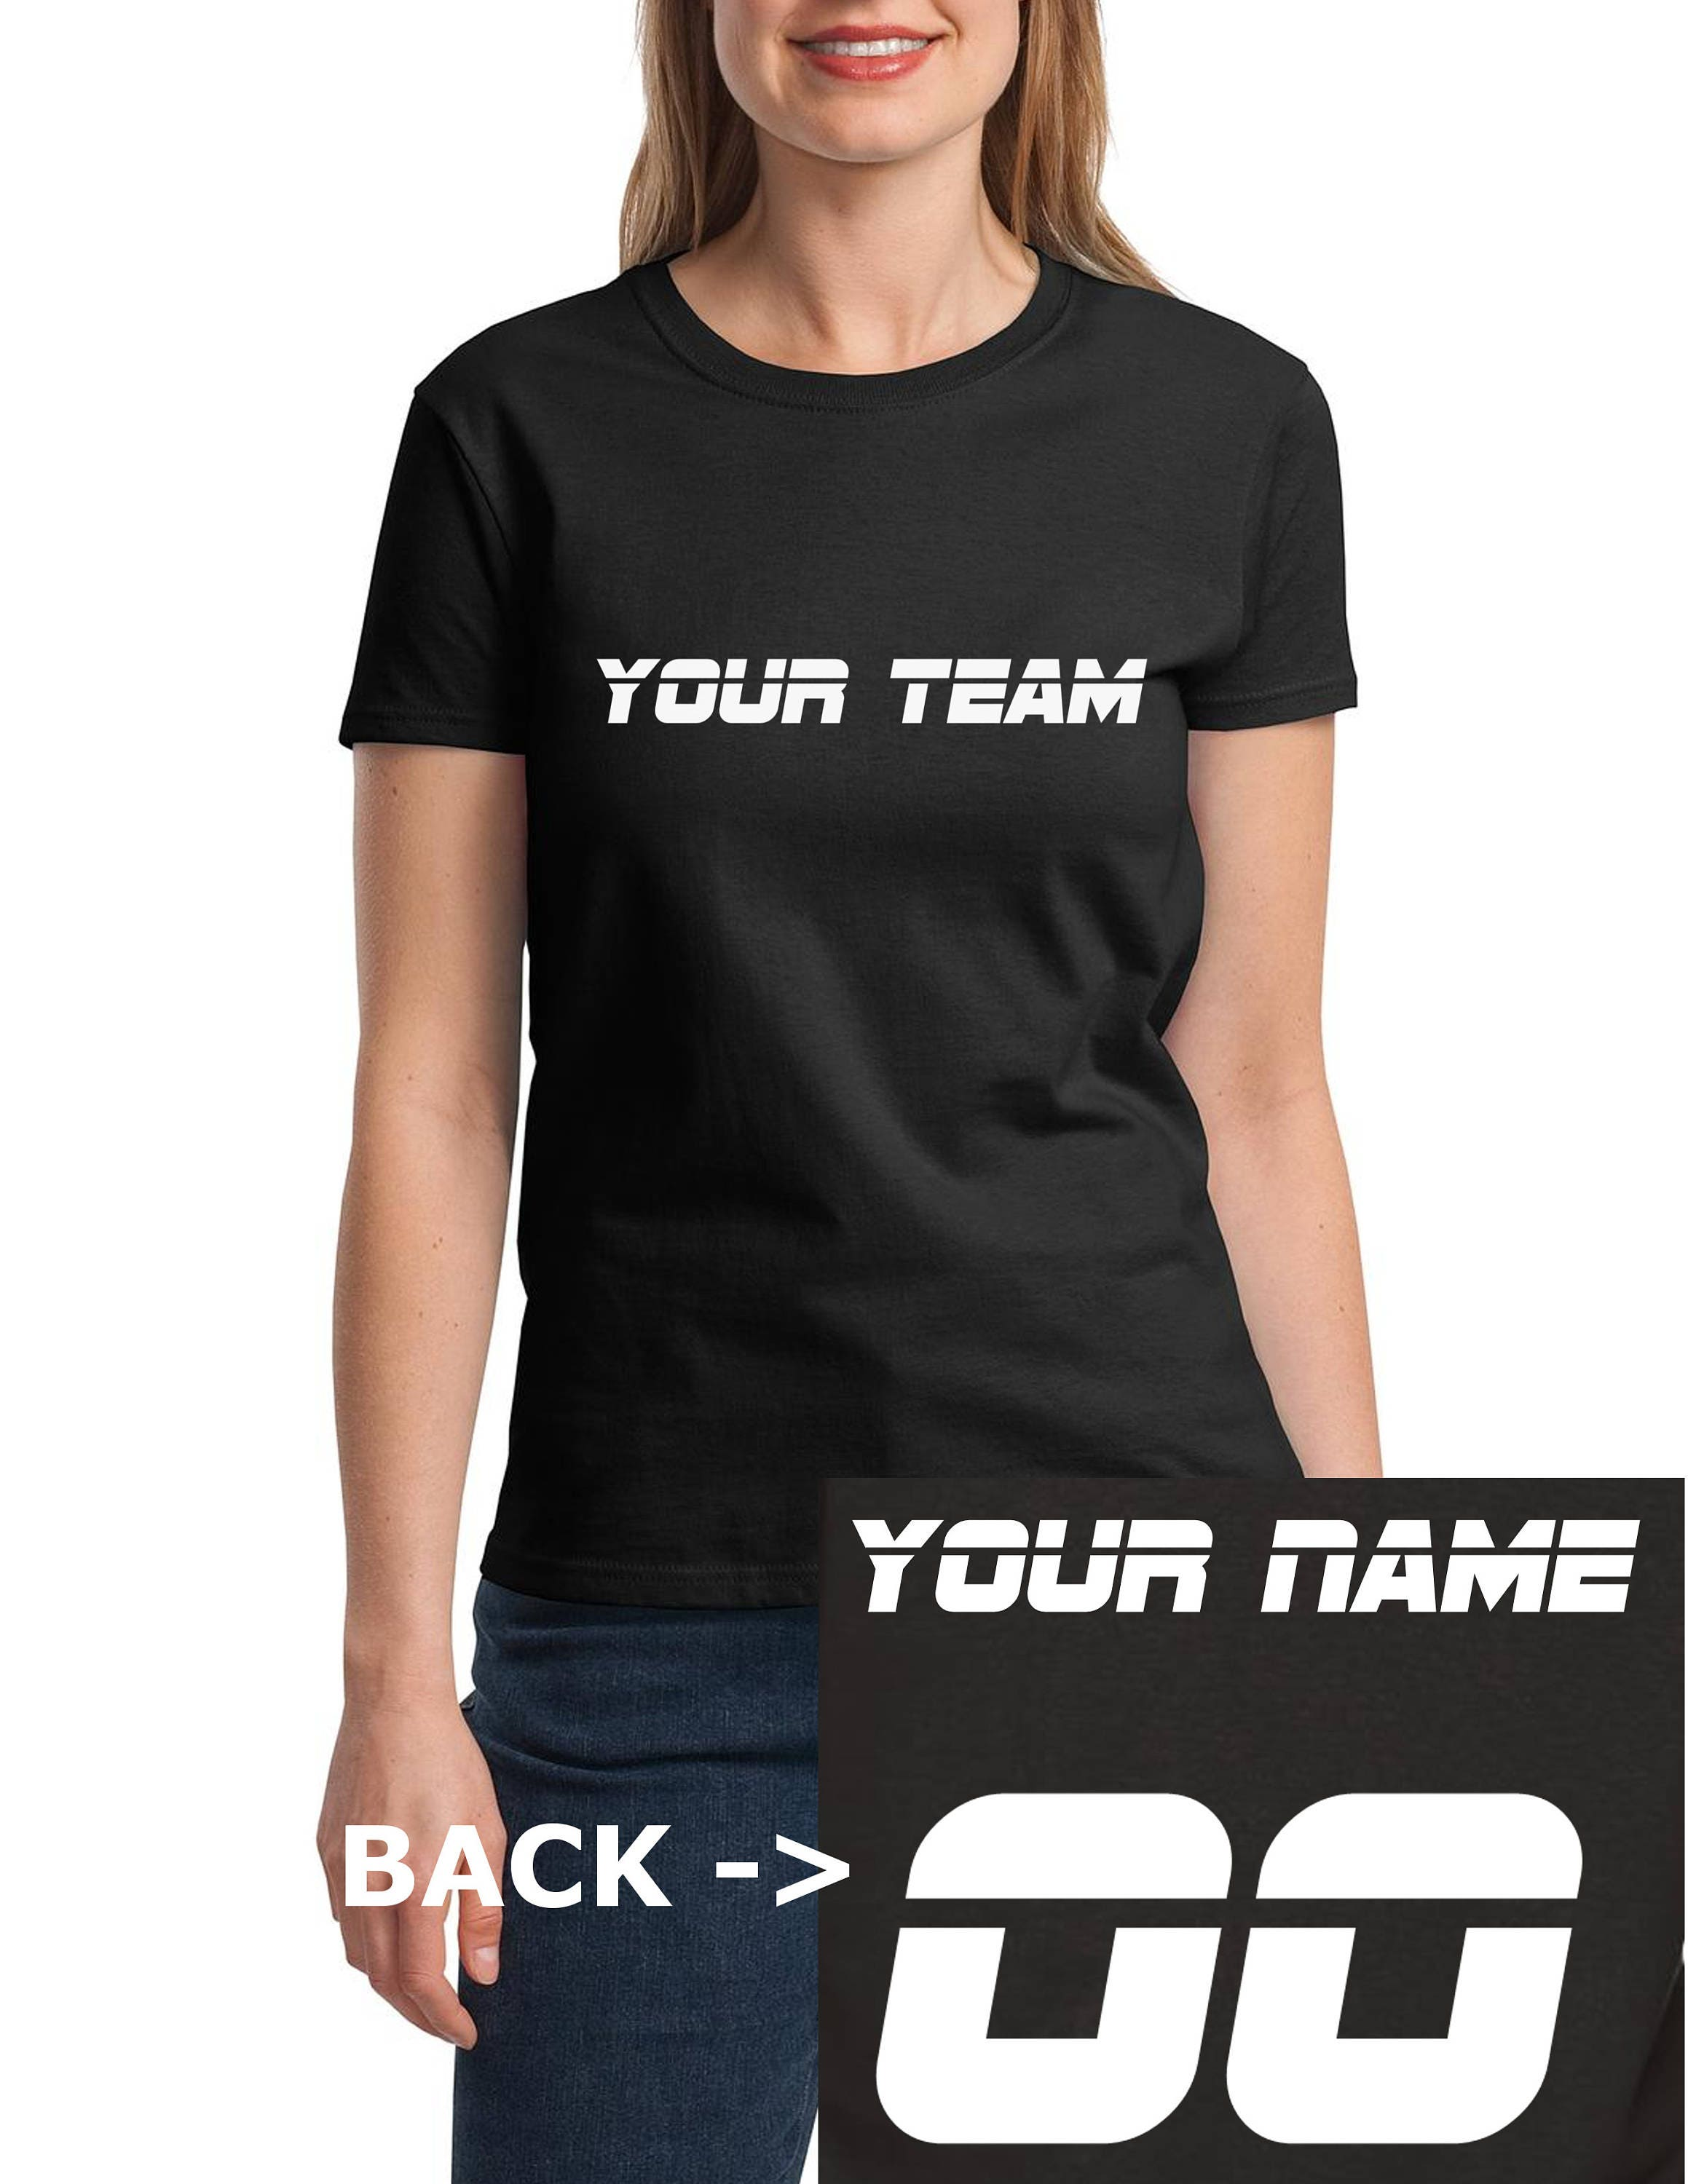 f3423a10 Ladies CUSTOM Shirt JERSEY - Personalized Name Number Team Tee